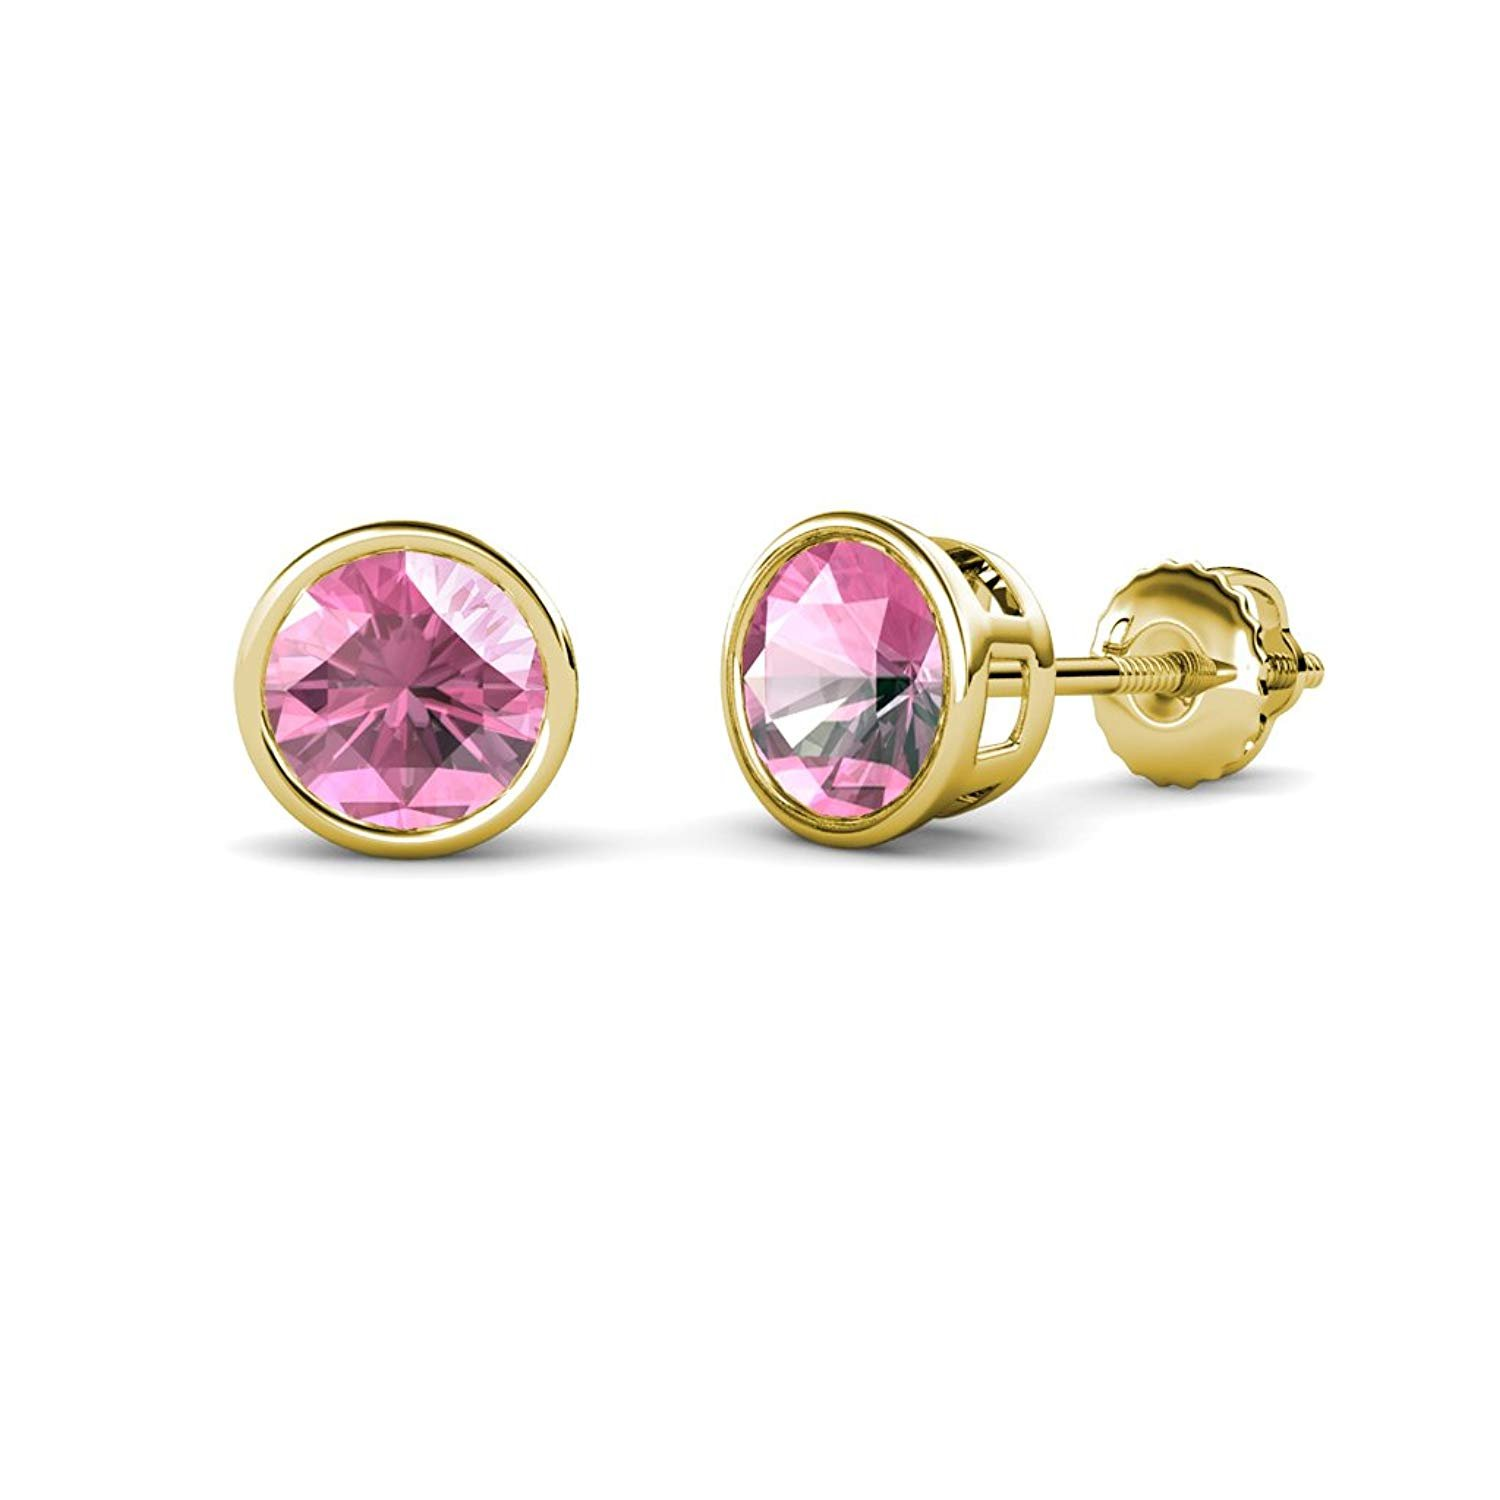 Pink Tourmaline Bezel Set Solitaire Stud Earrings 2.00 ct tw in 14K Yellow Gold by TriJewels